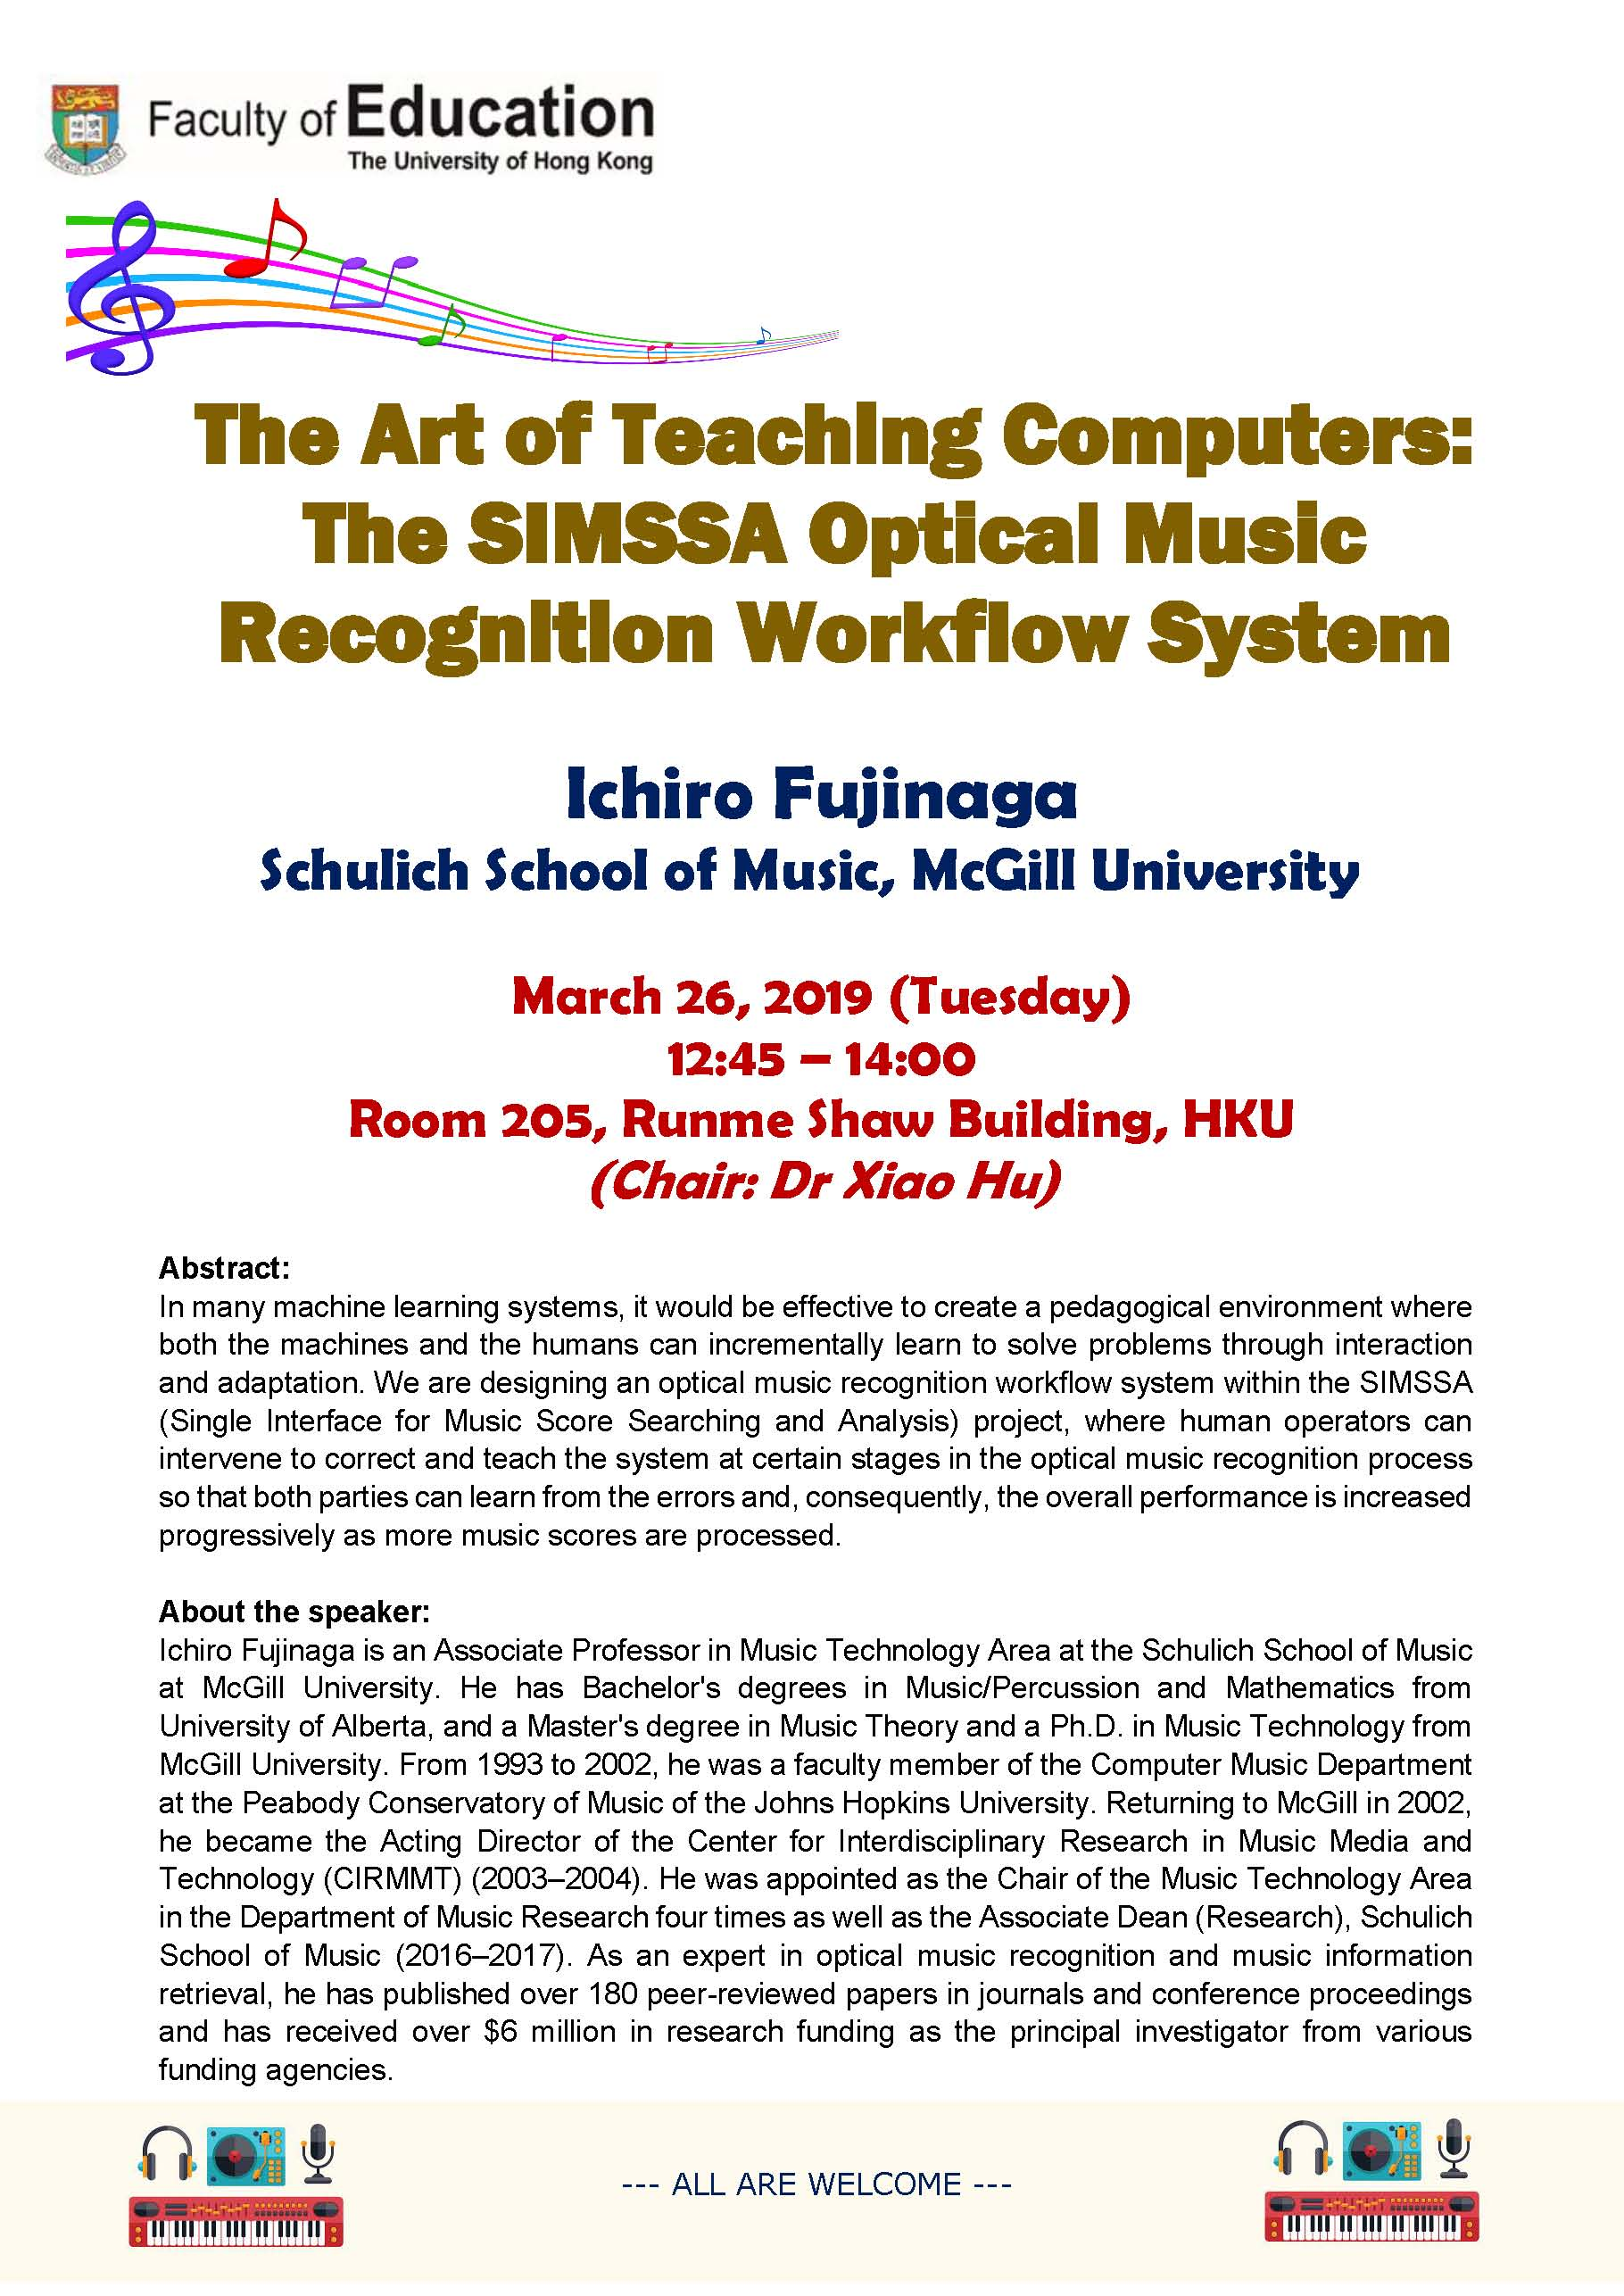 The Art of Teaching Computers: The SIMSSA Optical Music